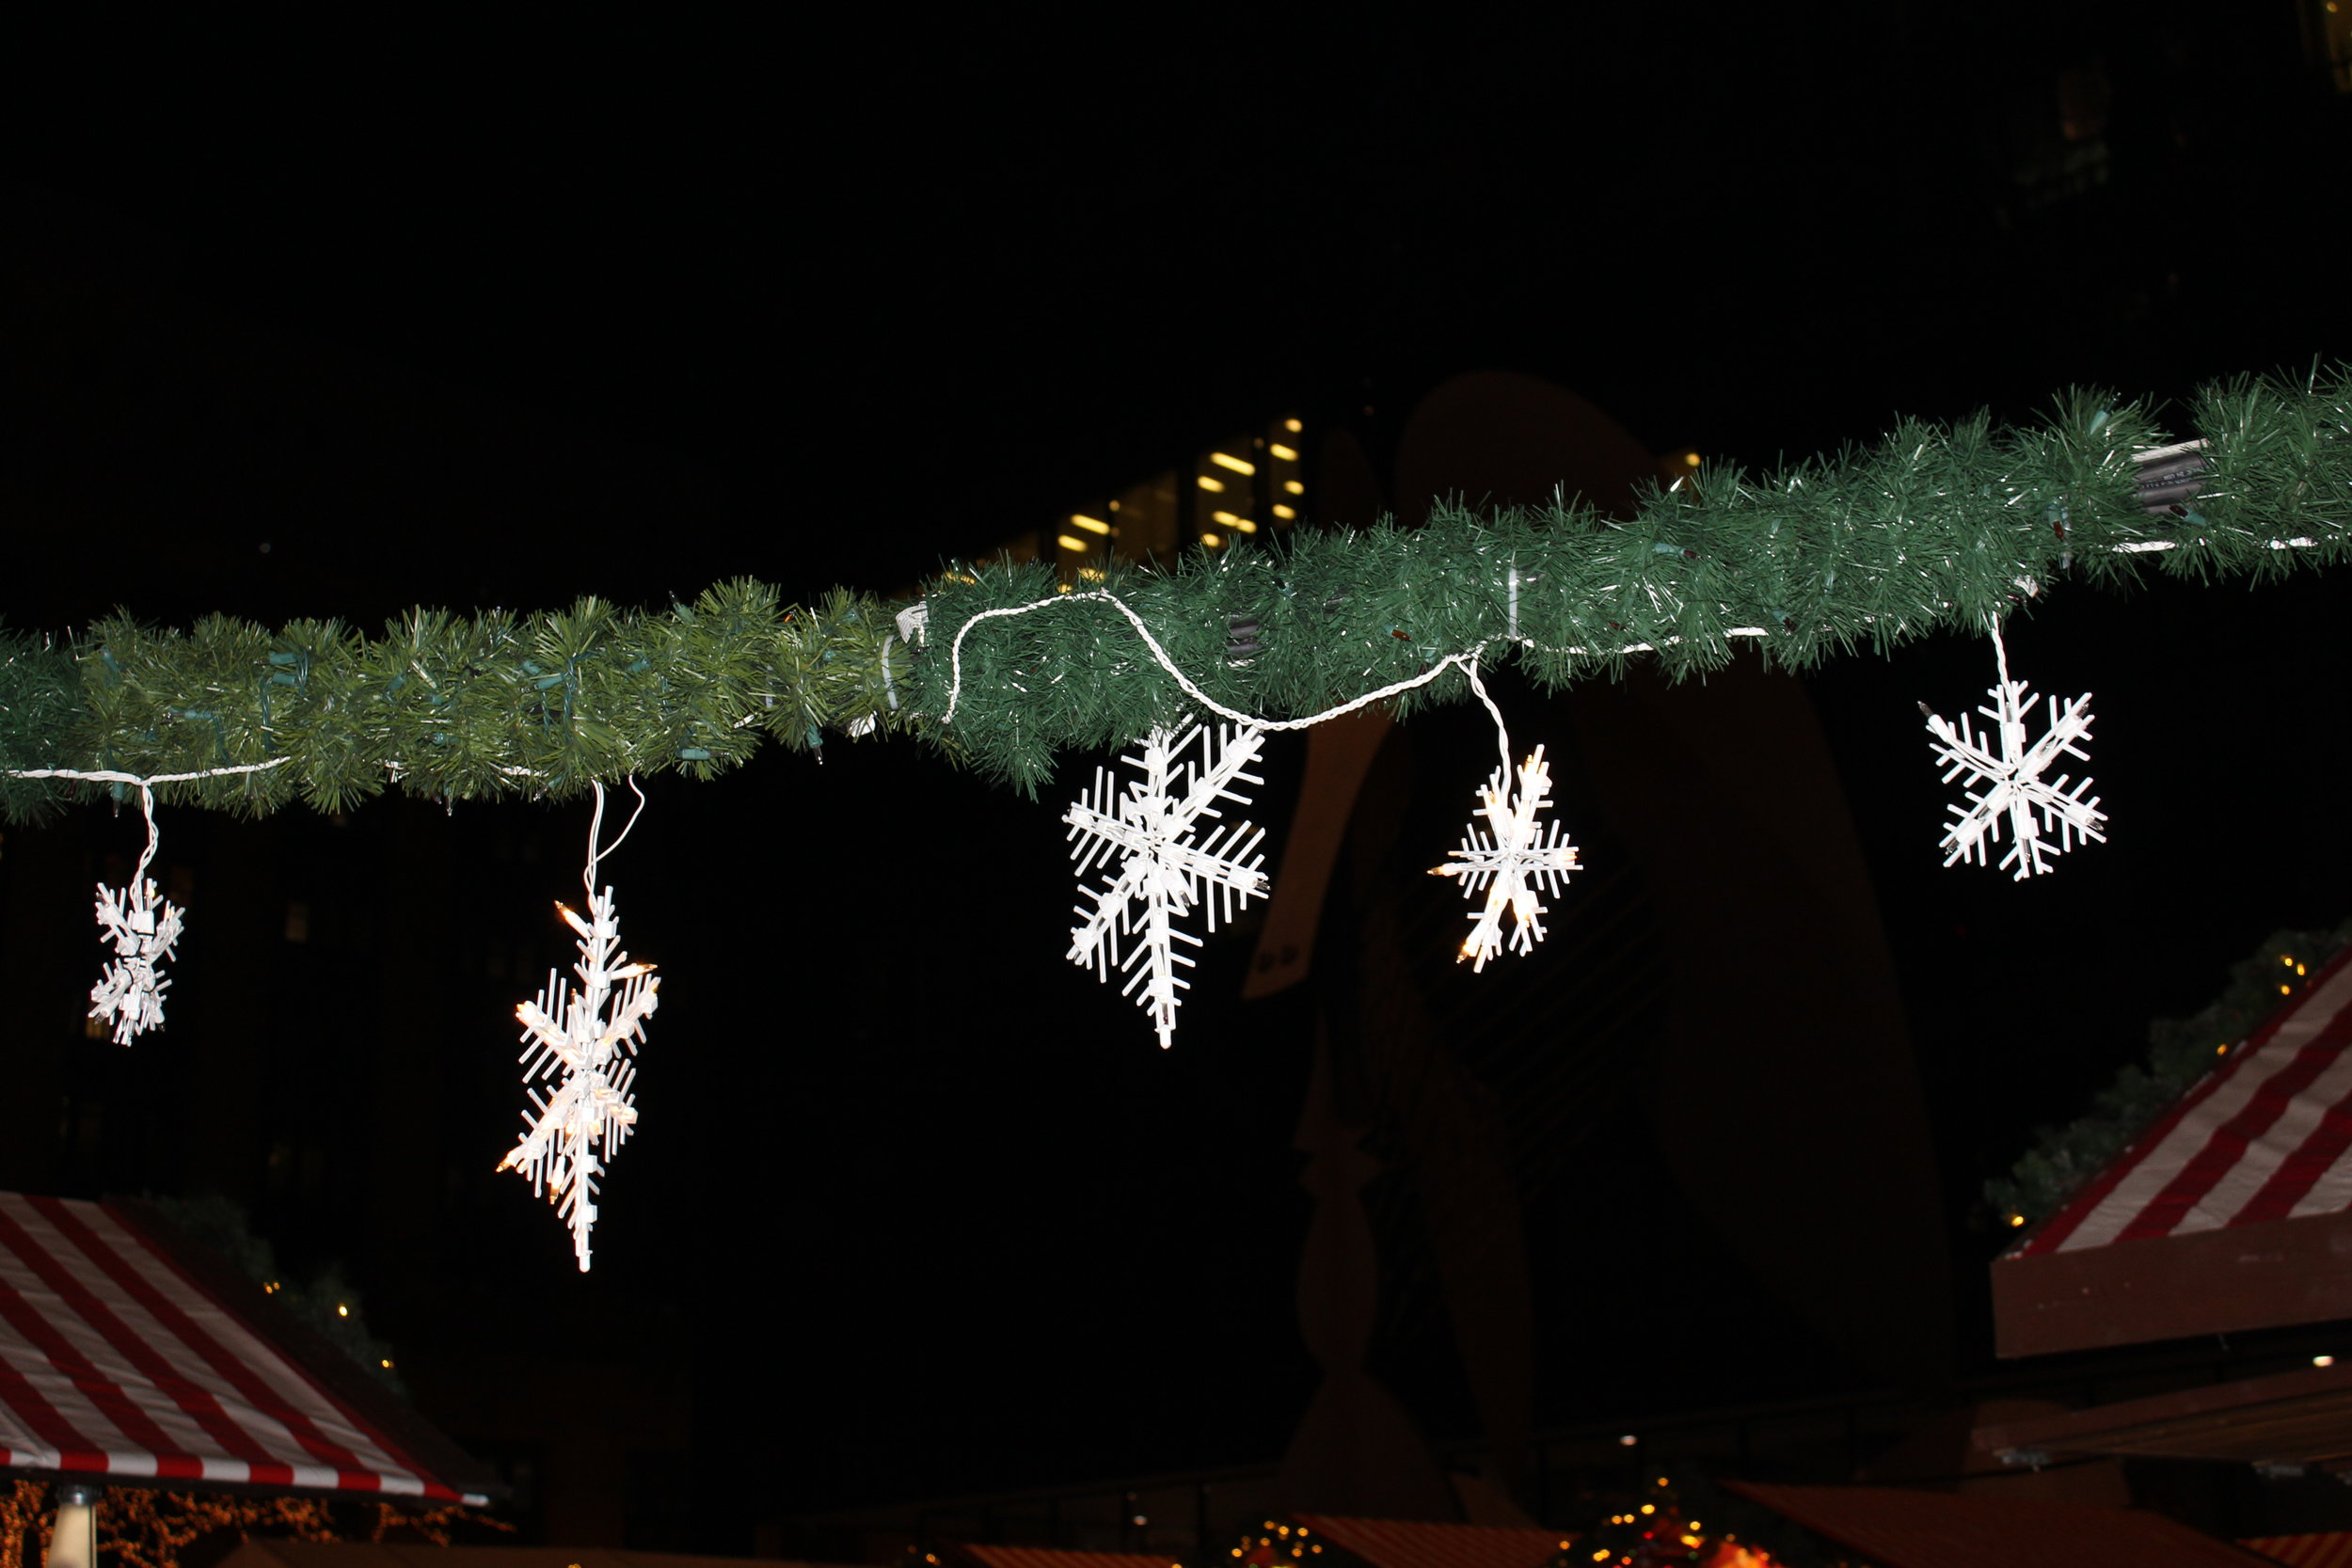 Flaking snow flakes at Christkindl.